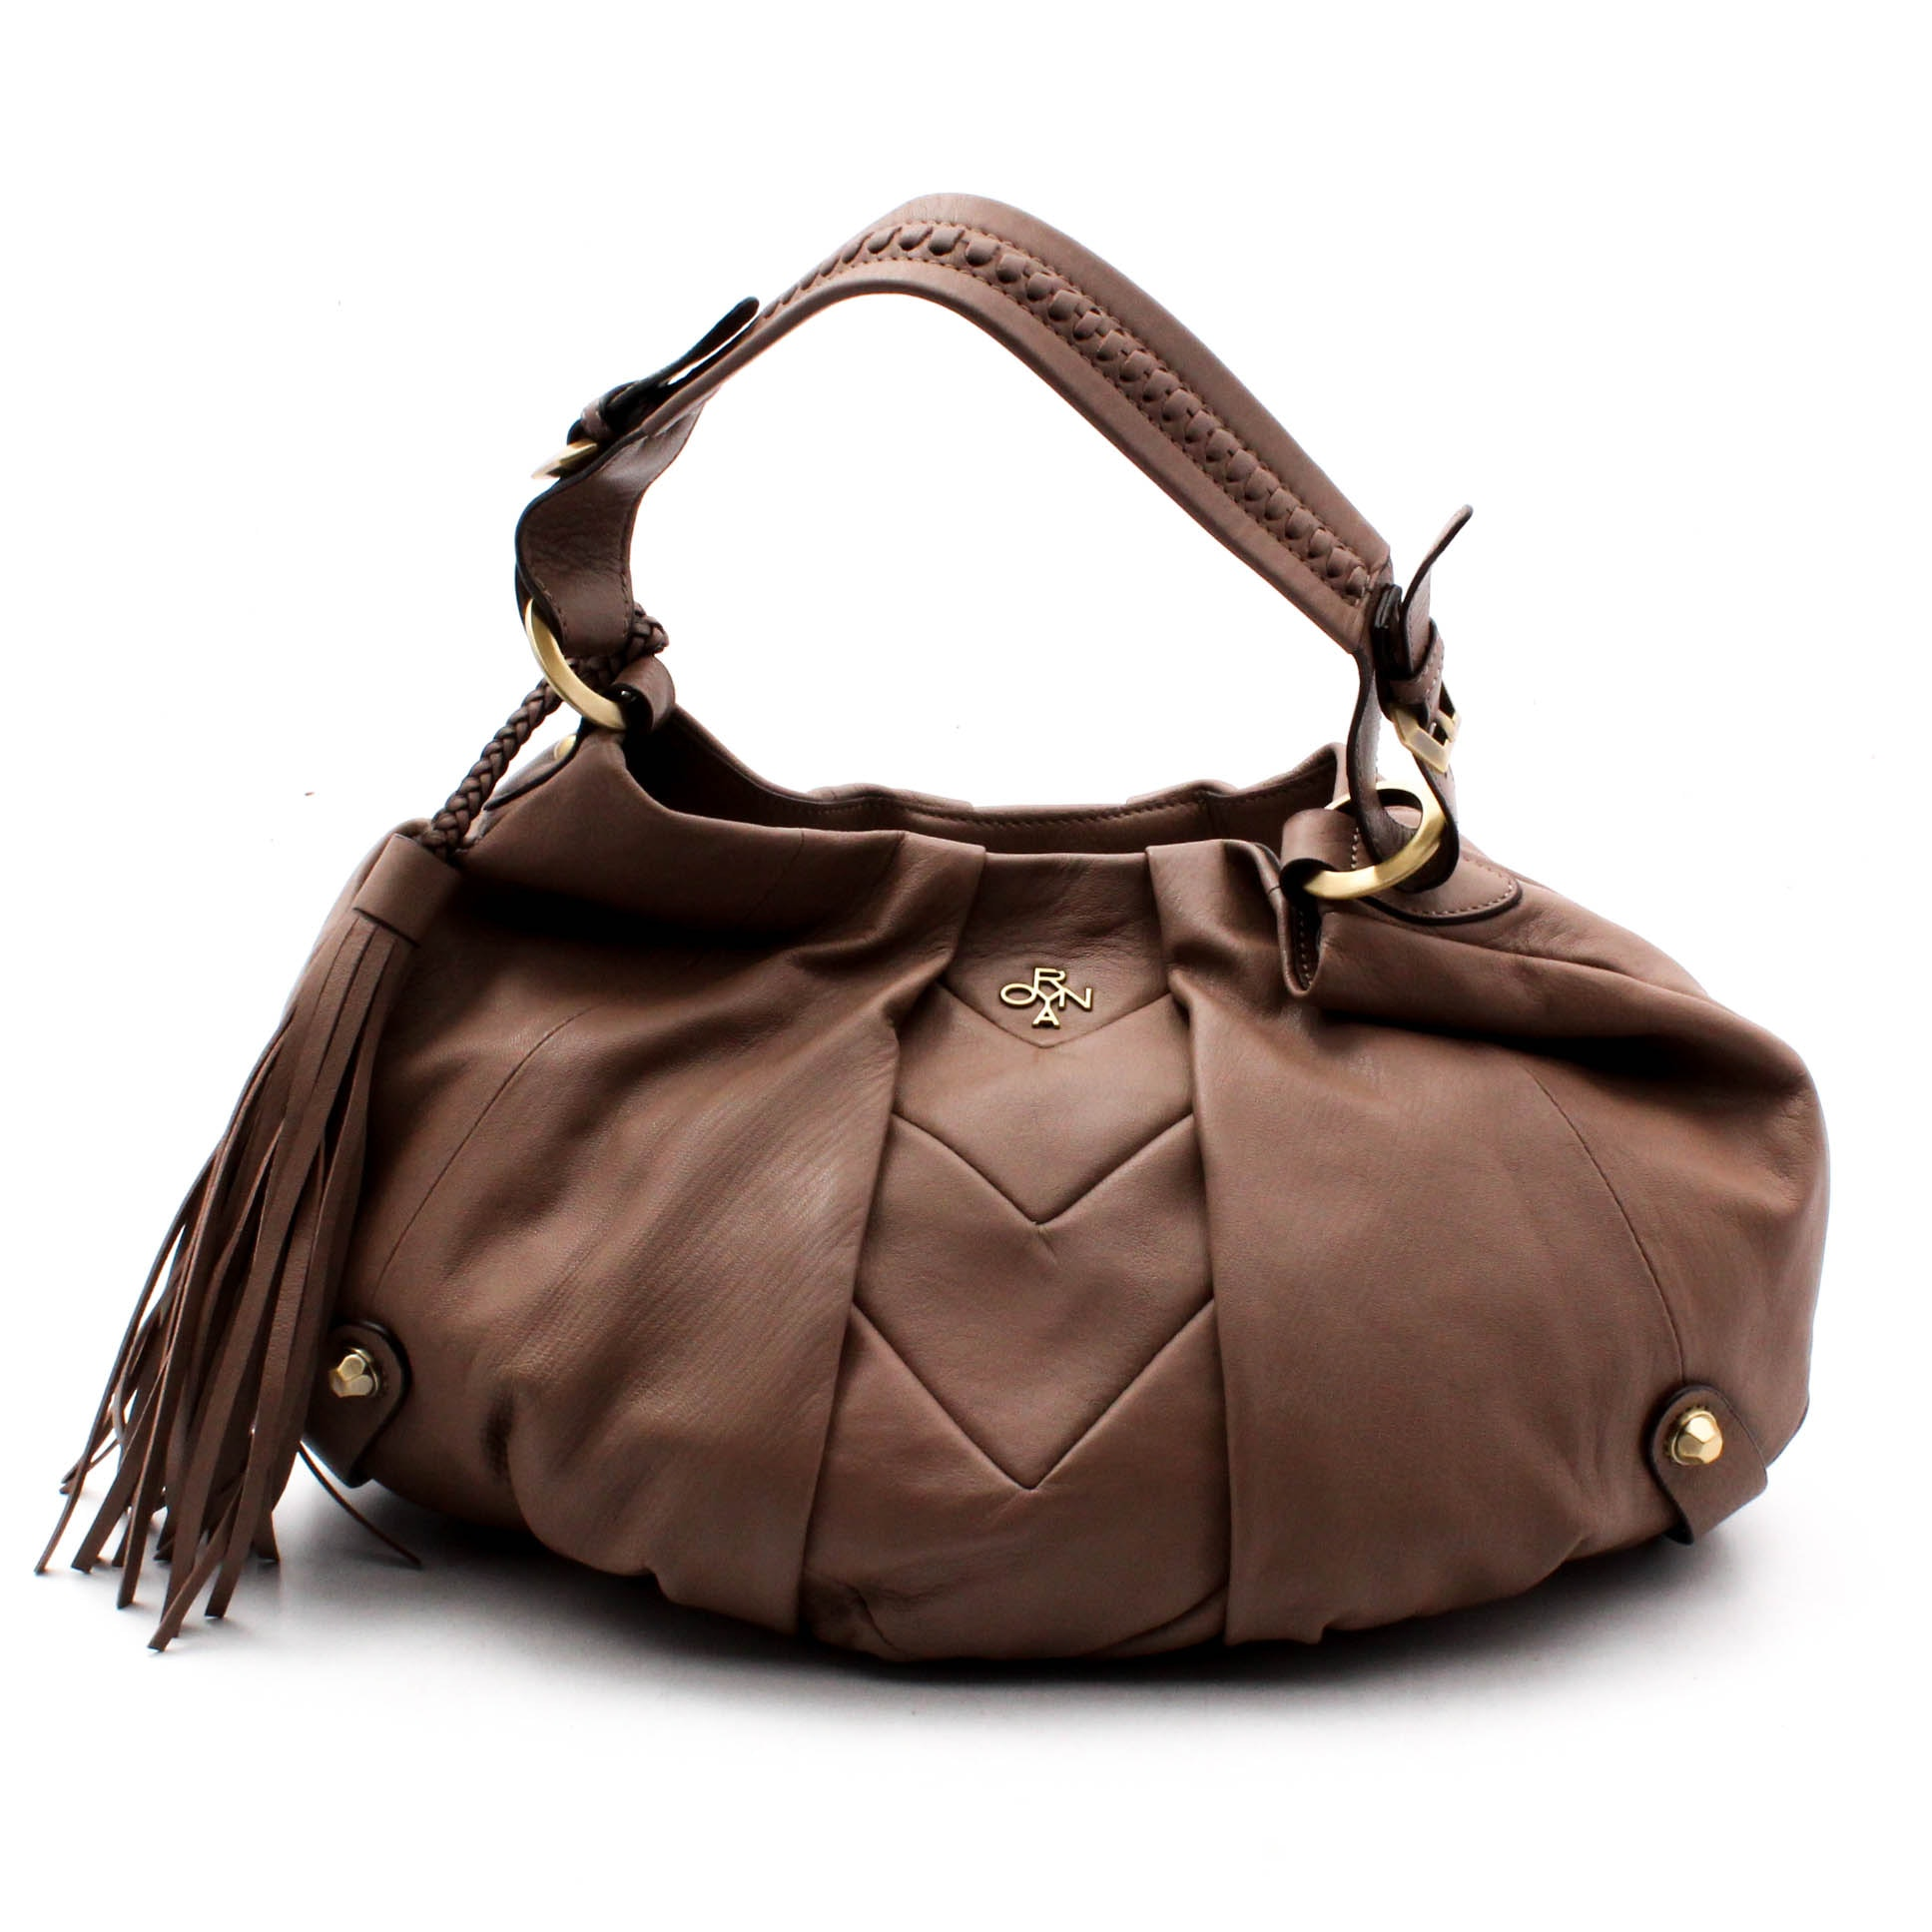 orYANY Leather Hobo Handbag